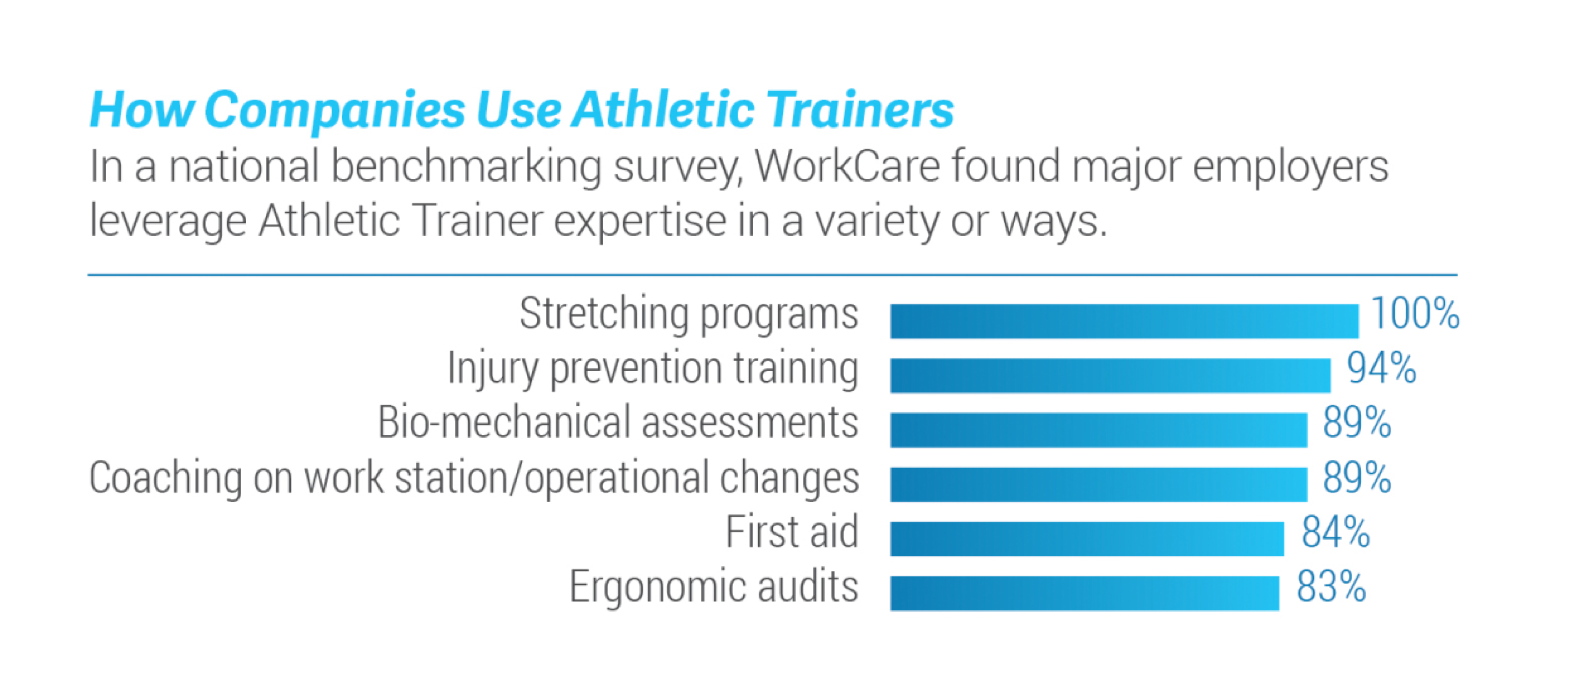 https://www.workcare.com/wp-content/uploads/2020/02/athletic-trainer-chart-1.png